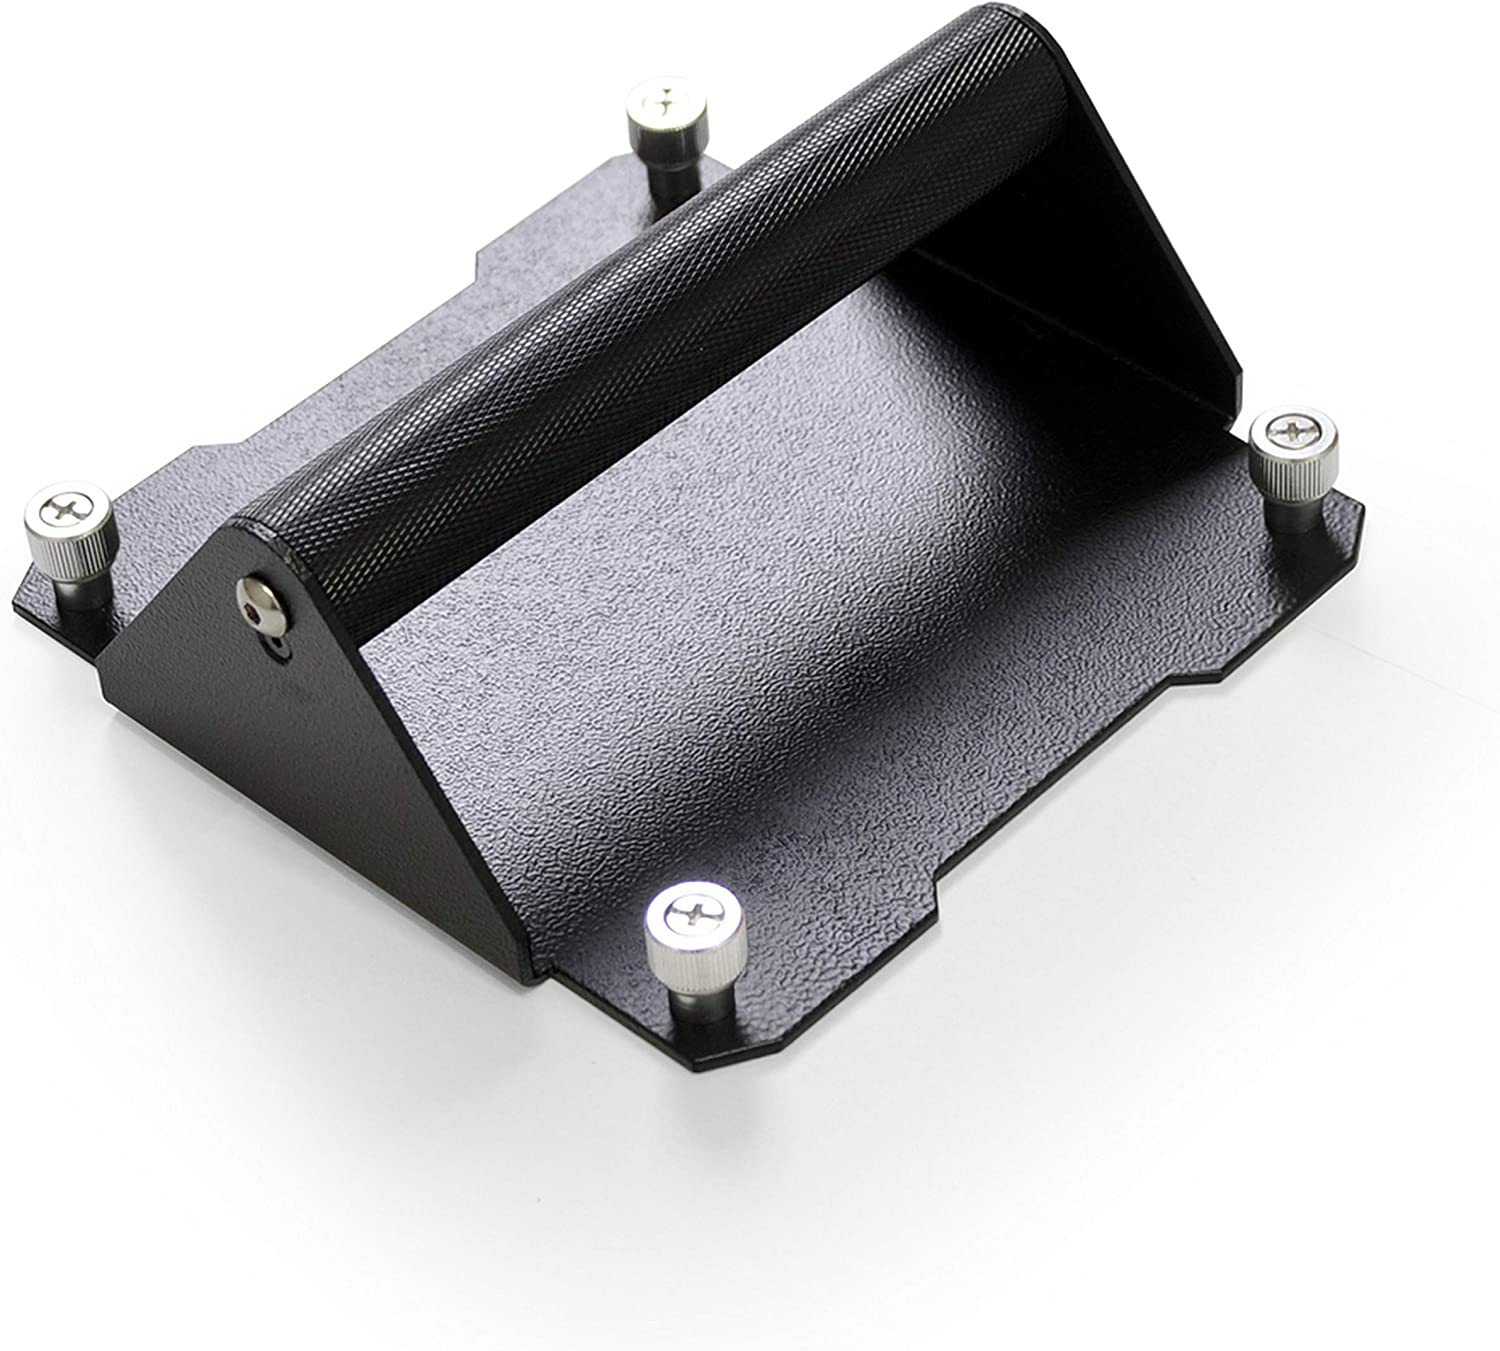 Cineroid HG-FL Hand Grip Plate for Panel Support